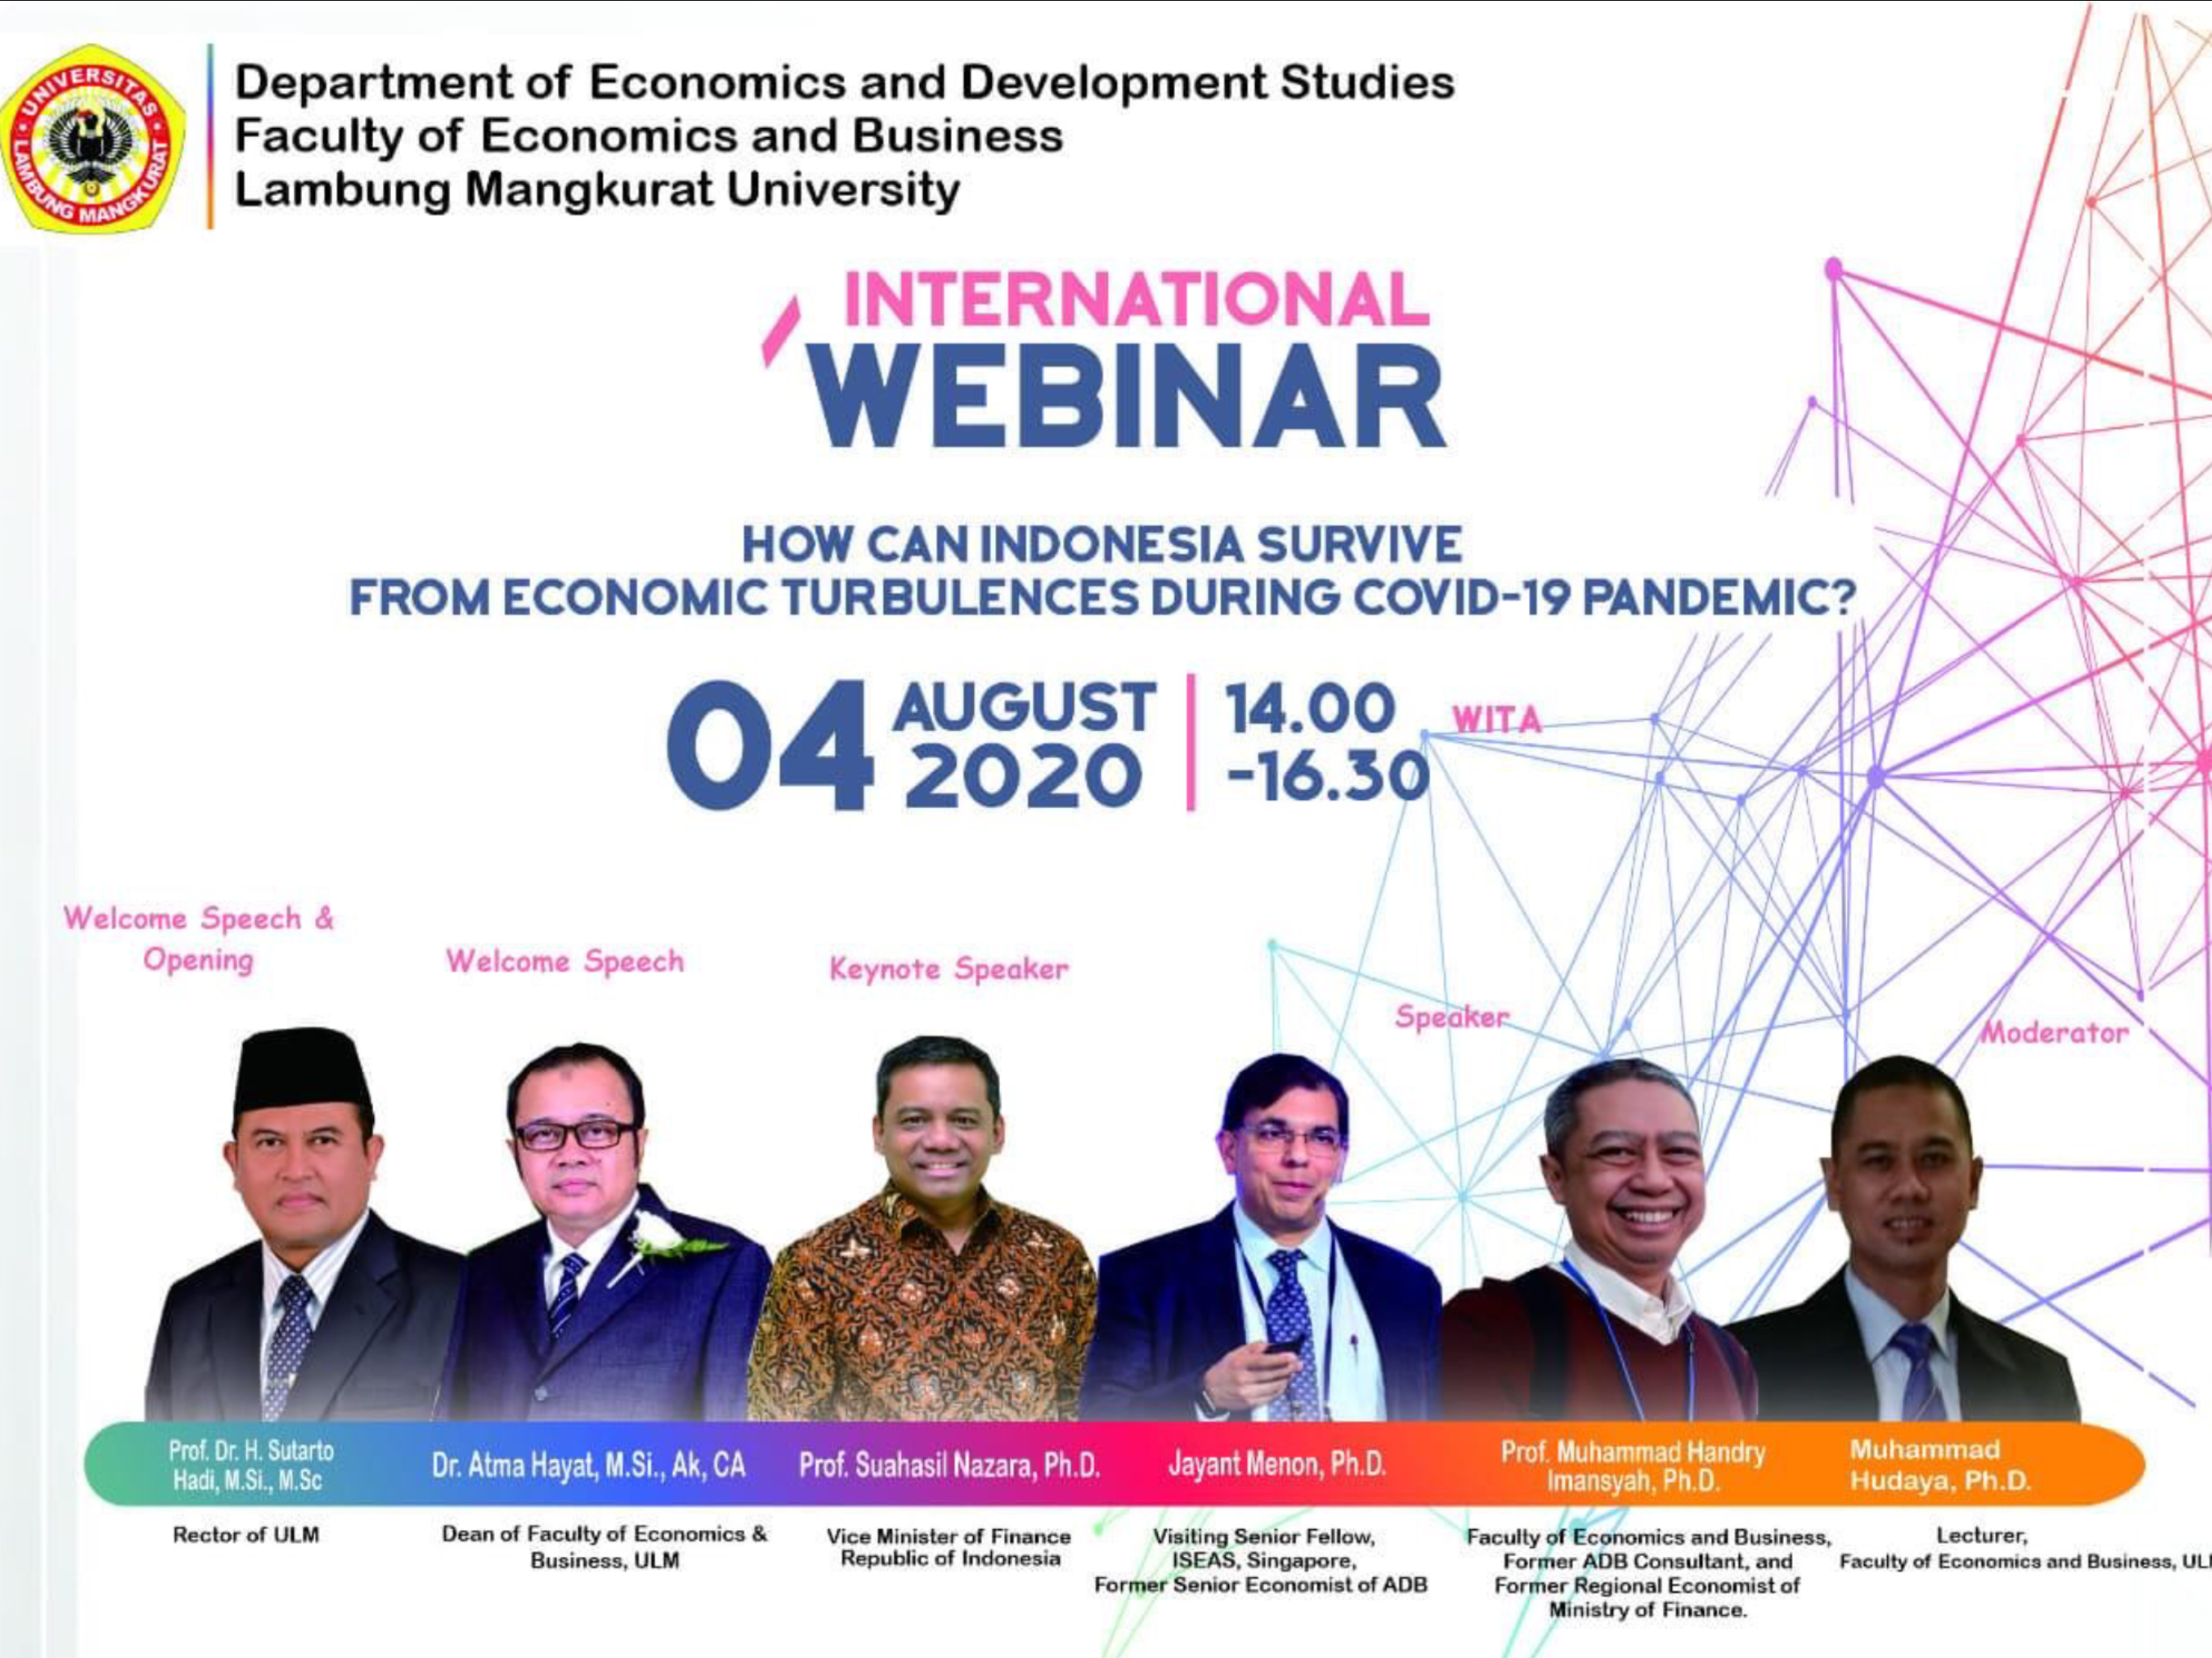 International Webinar - How Can Indonesia Survive from Economic Turbulences During Covid-19 Pandemic?